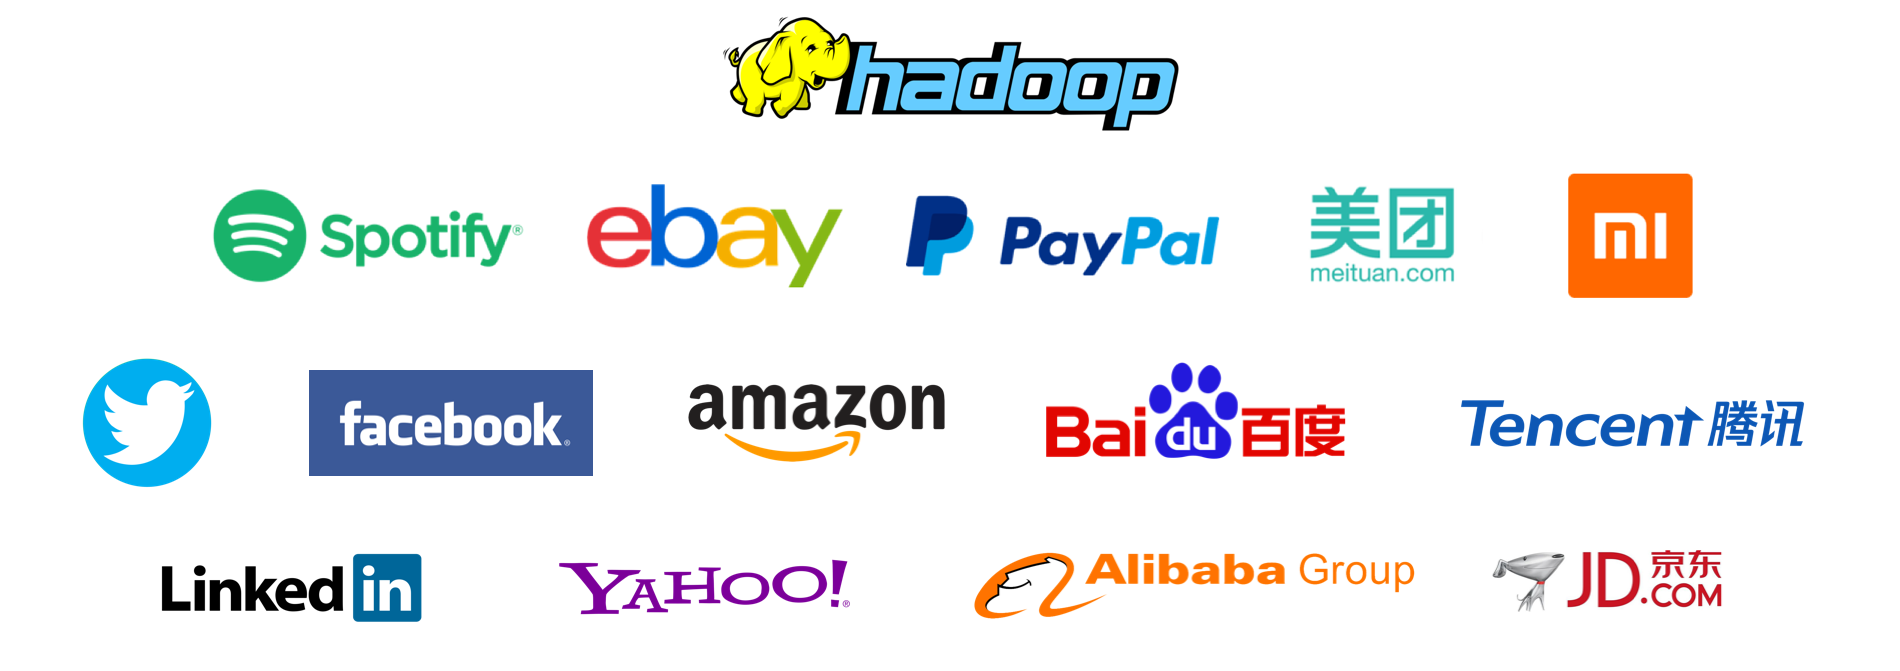 Worldwide References Apache Hadoop Eco-system